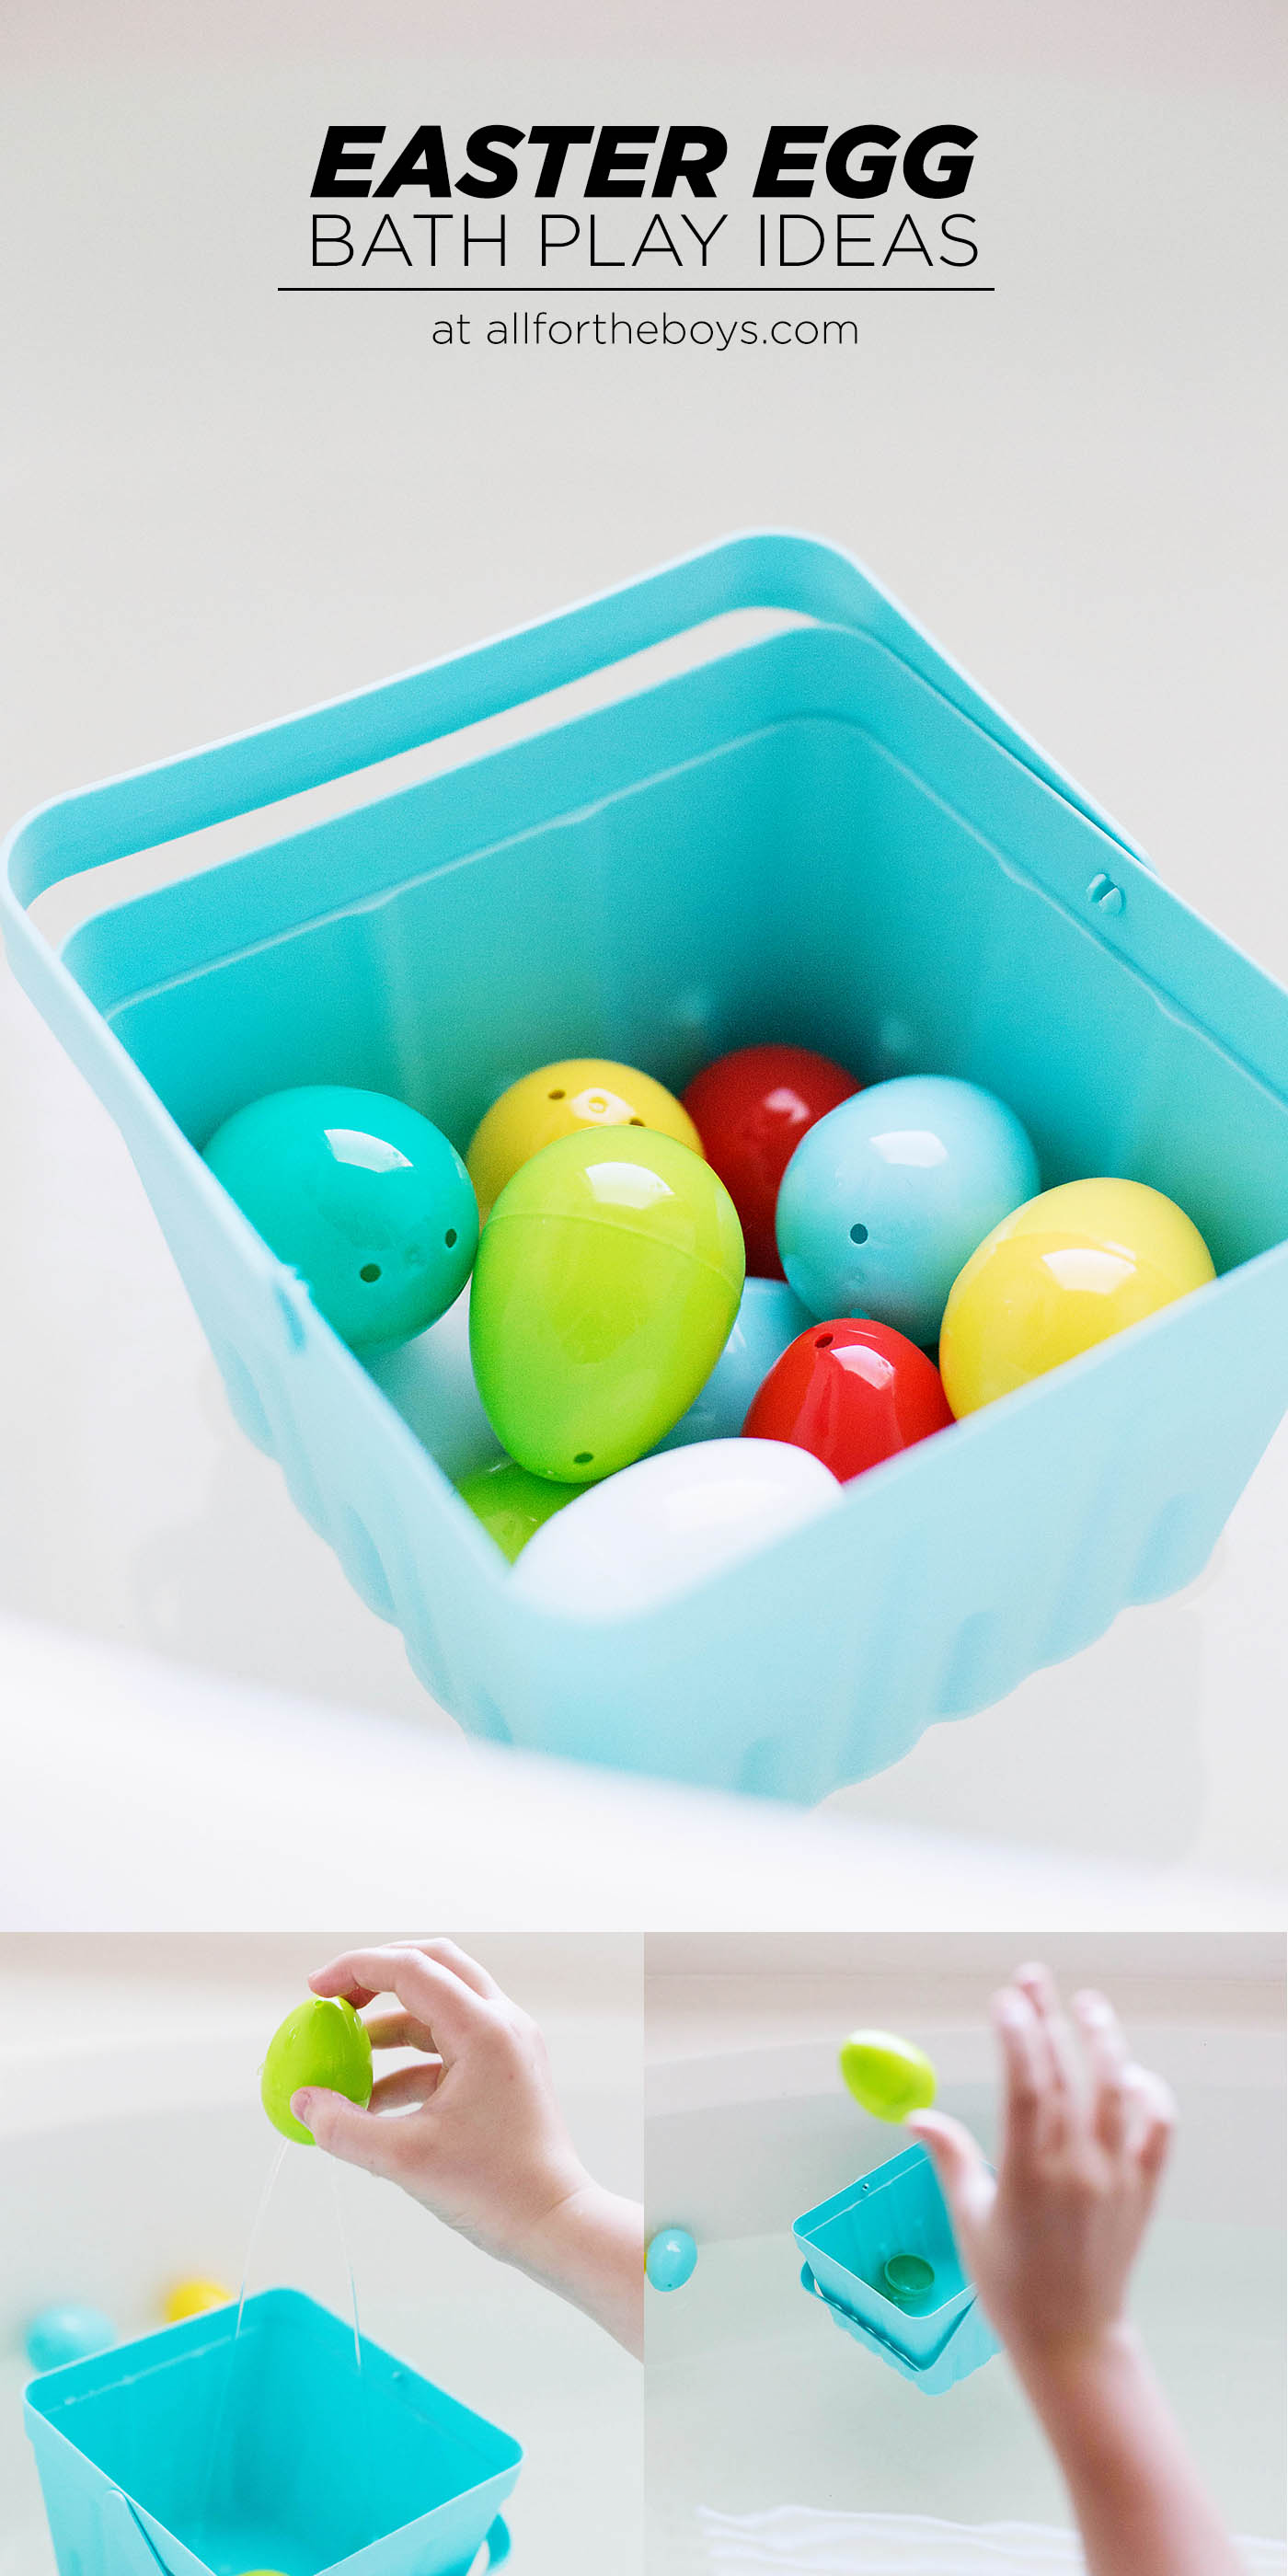 Plastic Easter egg bath play ideas!